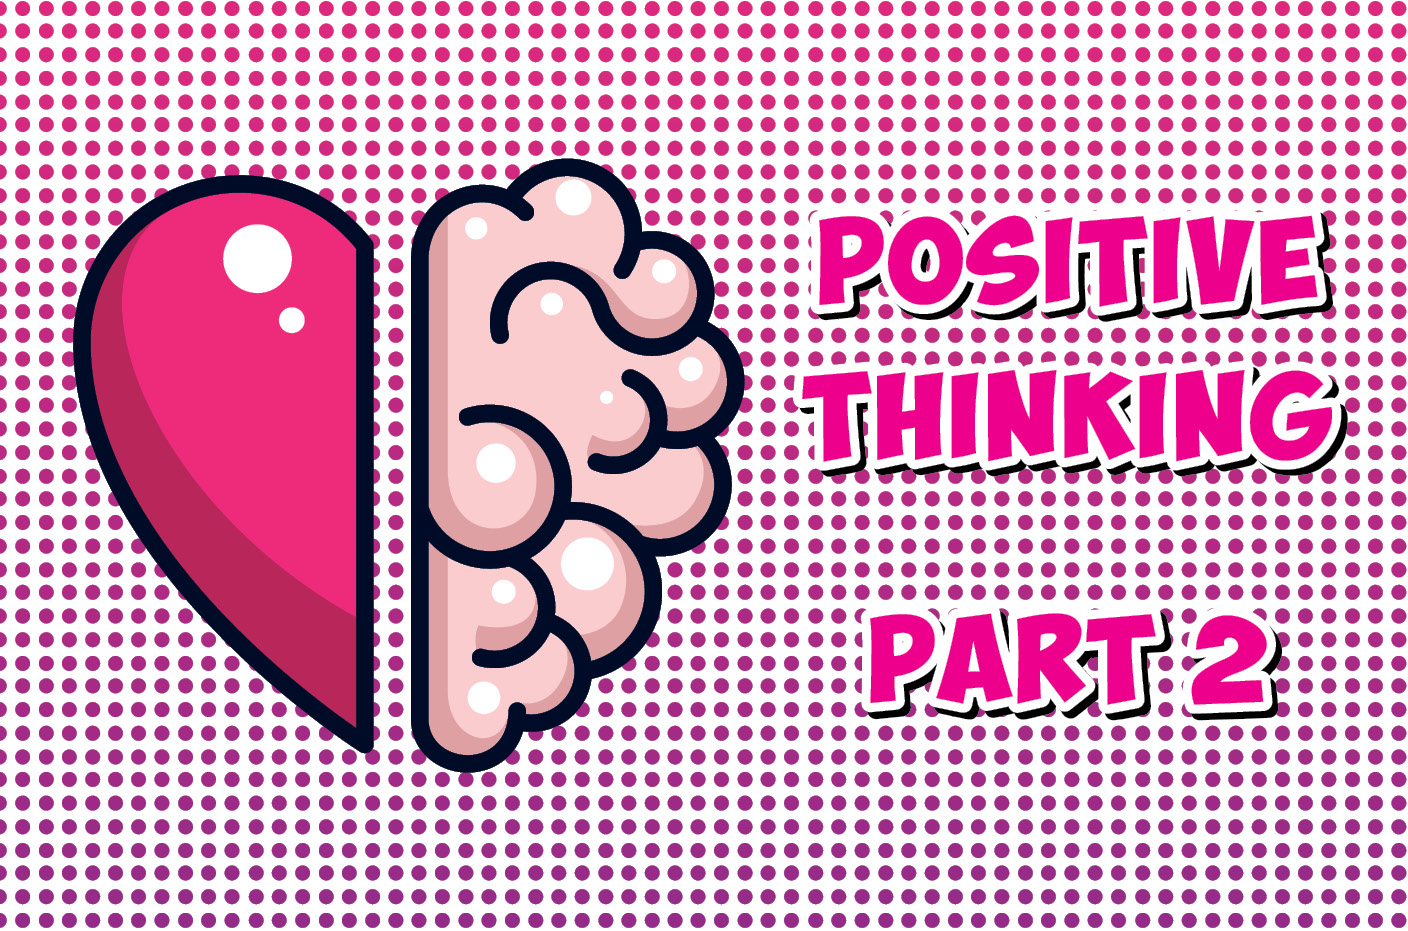 Positive Thinking Part 2: Positive Affirmations